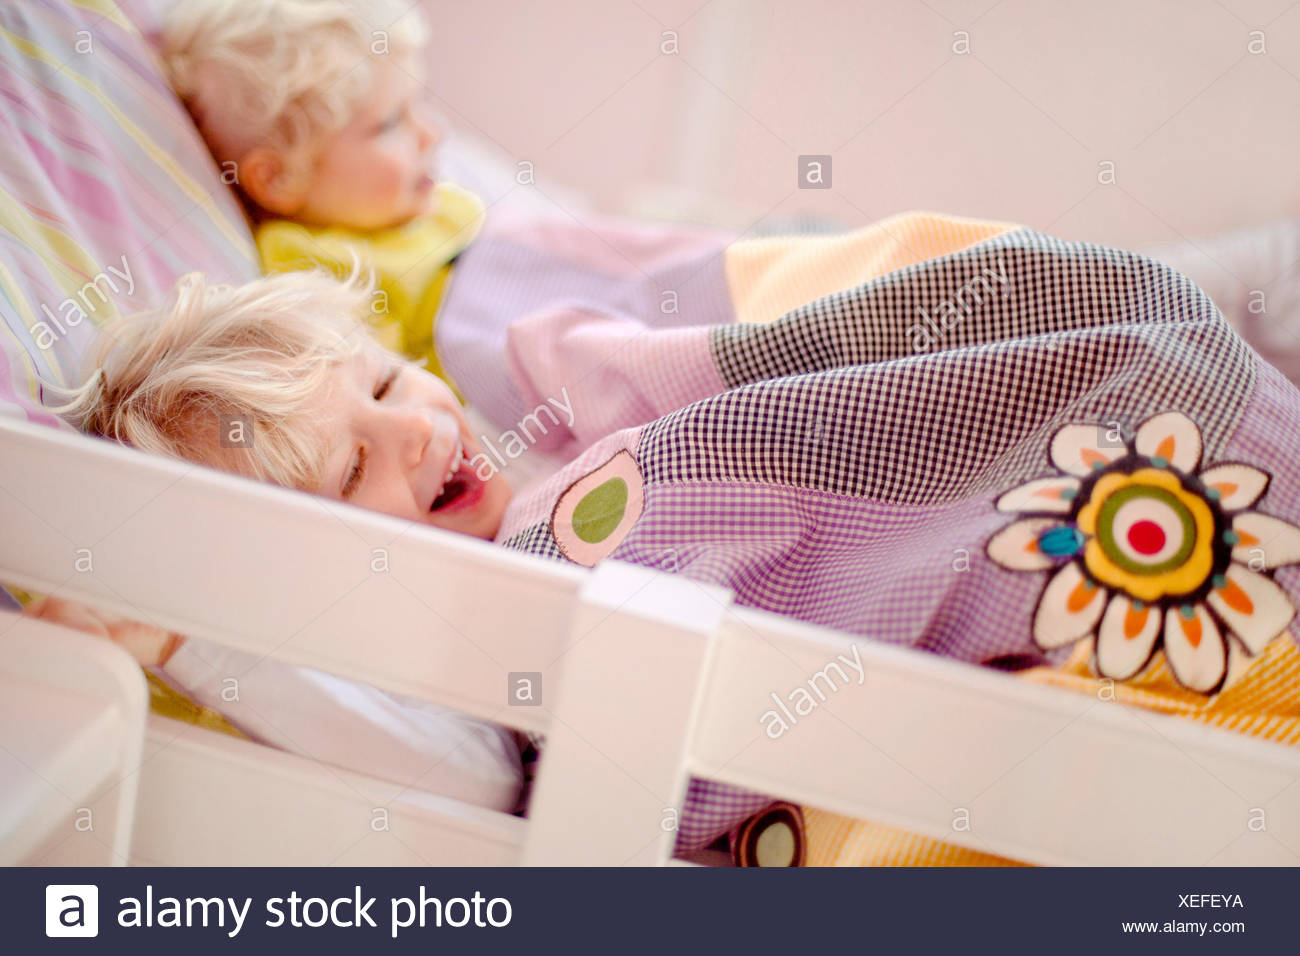 Two young brothers lying in bed, one laughing - Stock Image